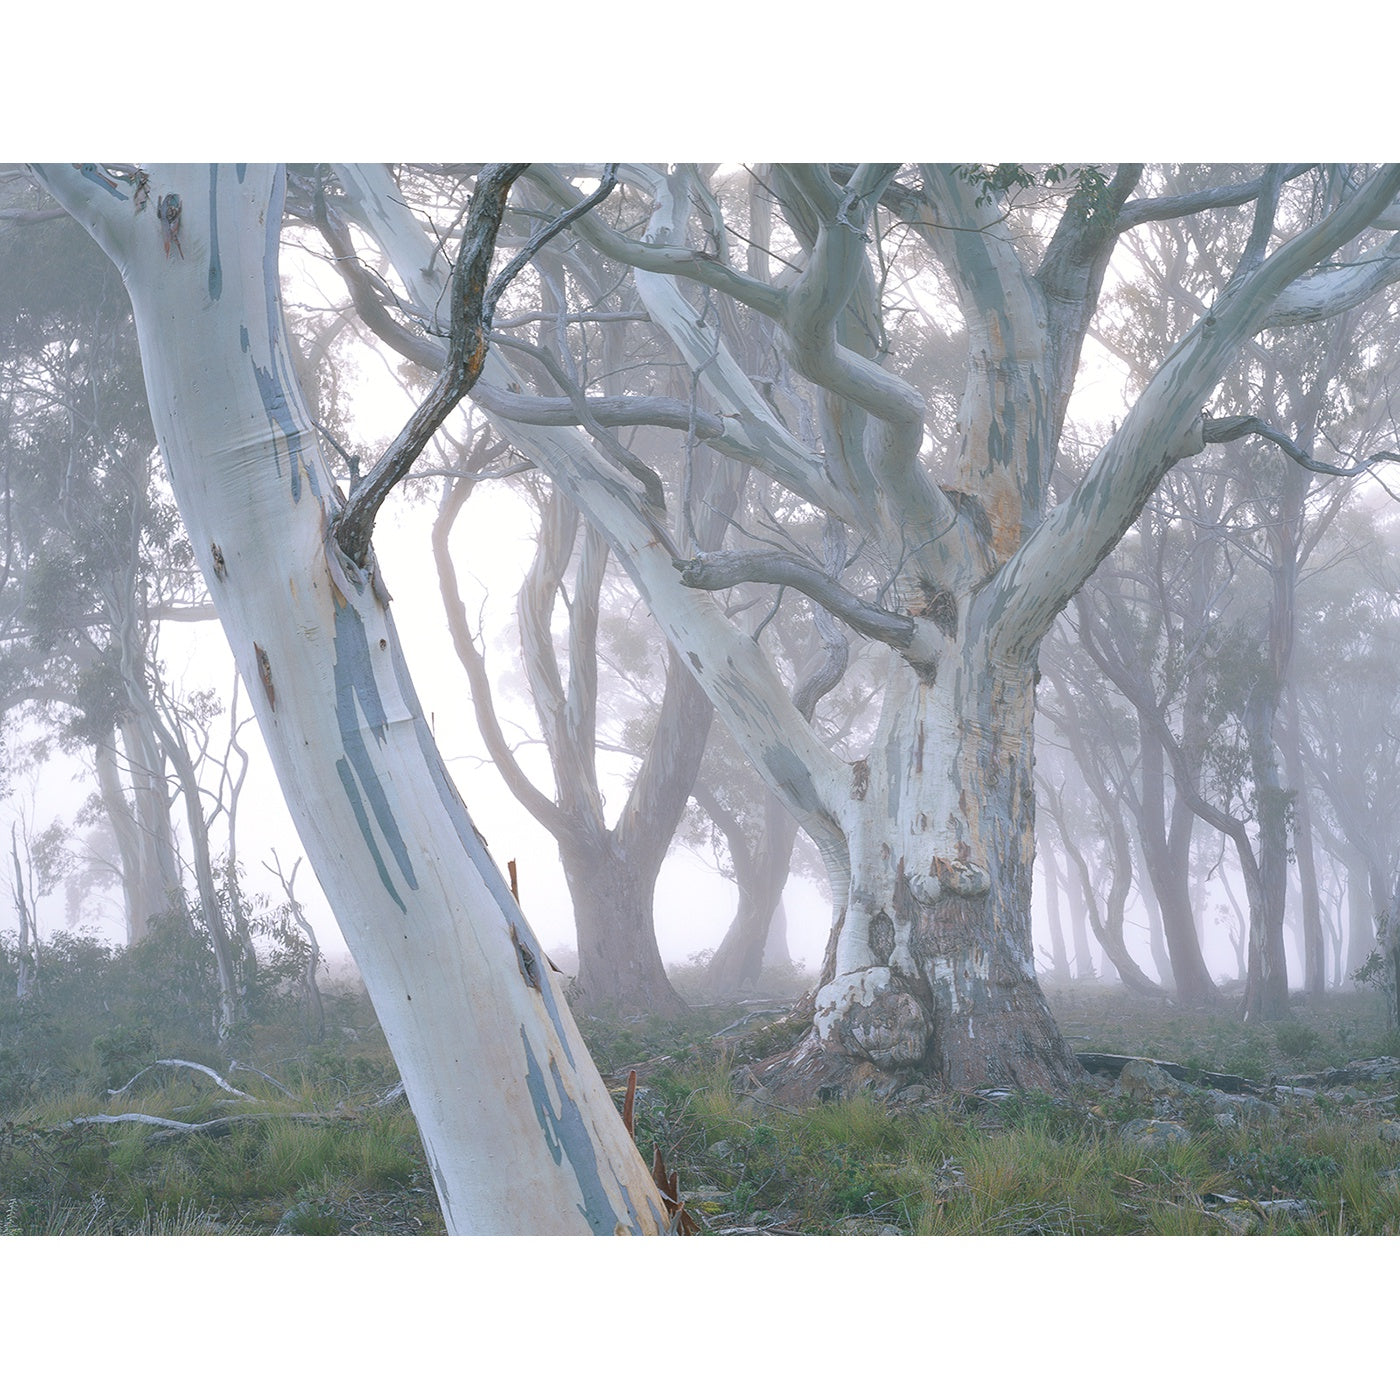 Chris Bell - Mountain White Gum in Mist